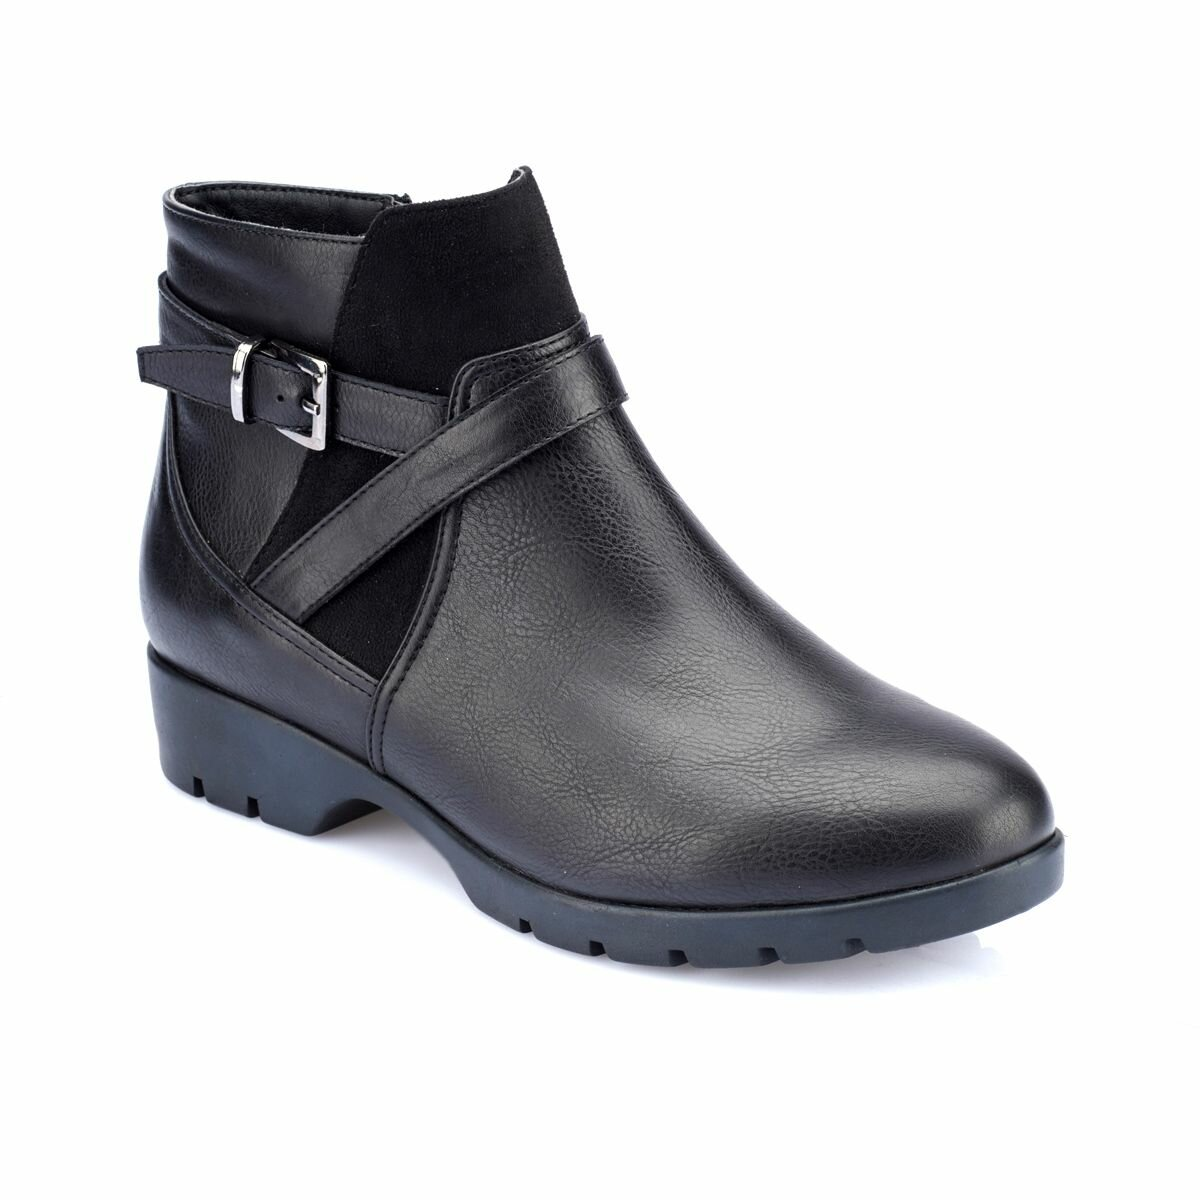 FLO 82.150347.Z Black Women Boots Polaris